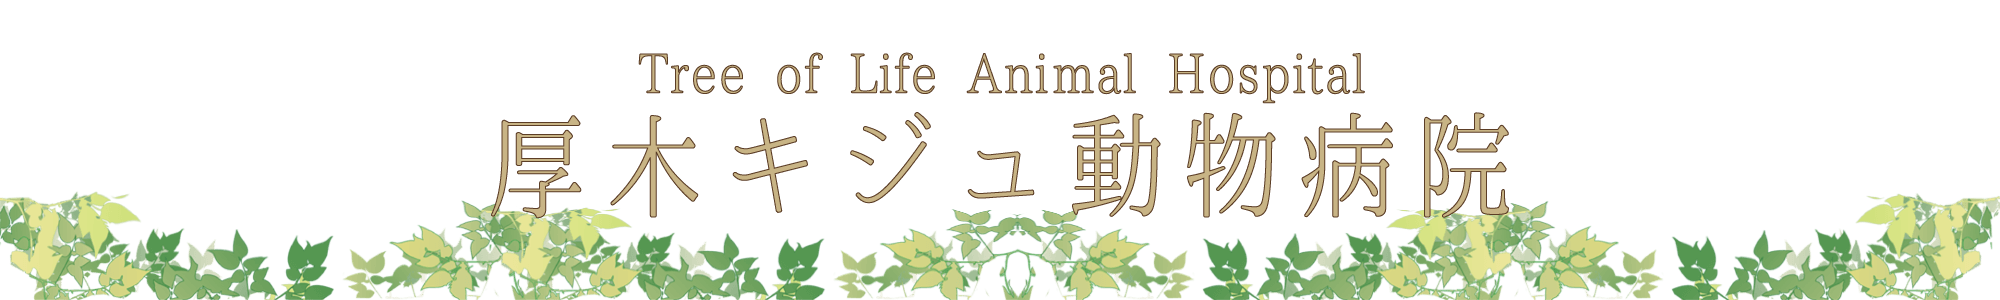 厚木キジュ動物病院|Tree of Life Animal Hospital